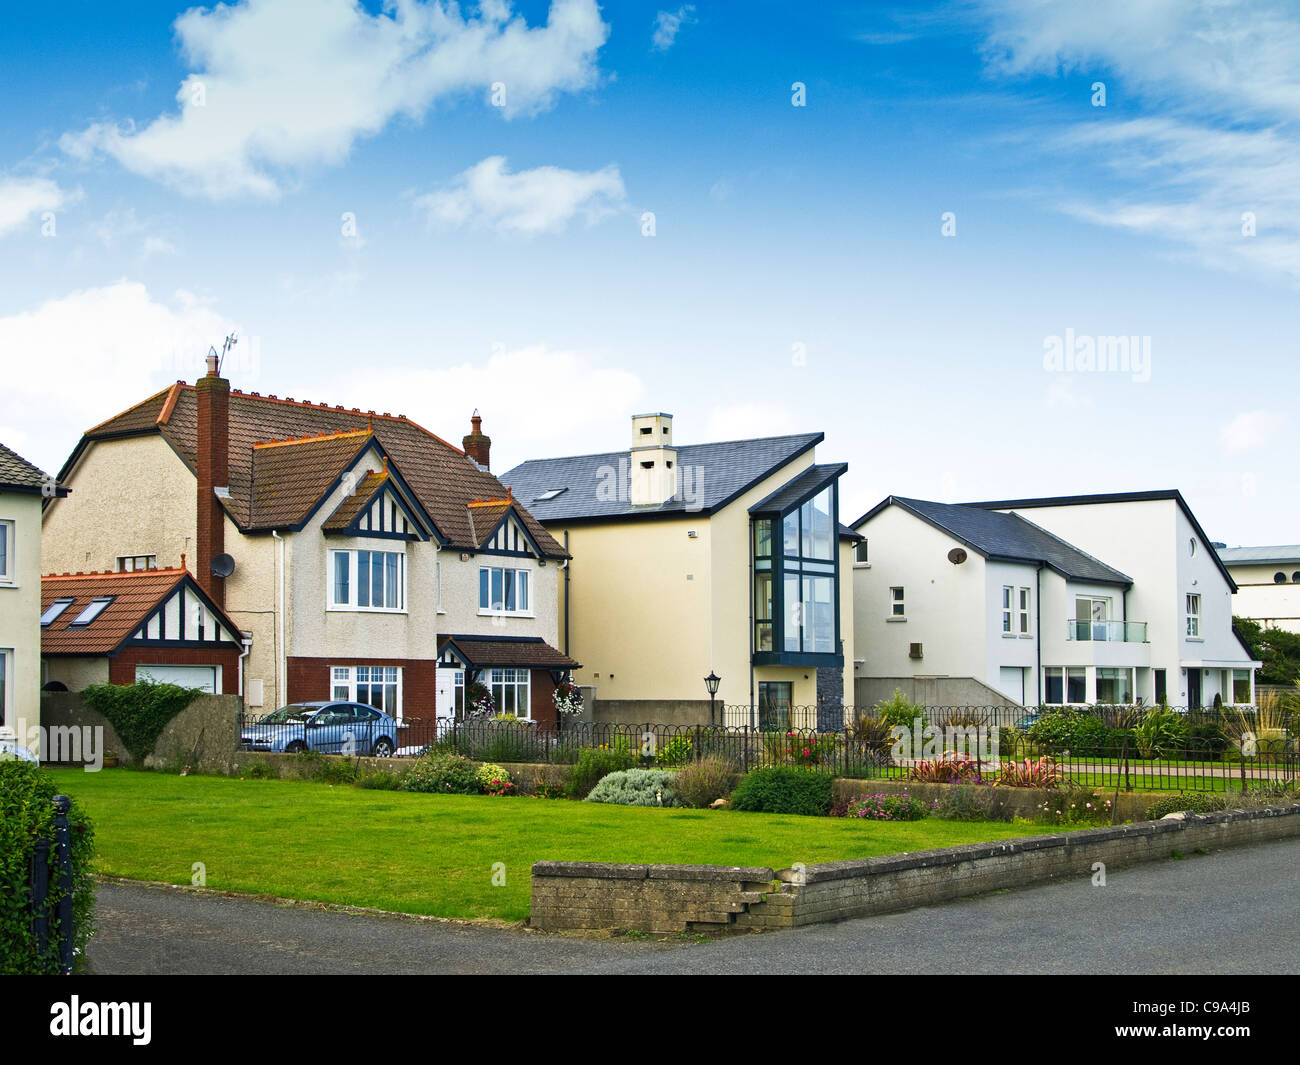 Three different house styles in a Dublin suburban town, overlooking the beach - Skerries, county Dublin, Ireland - Stock Image